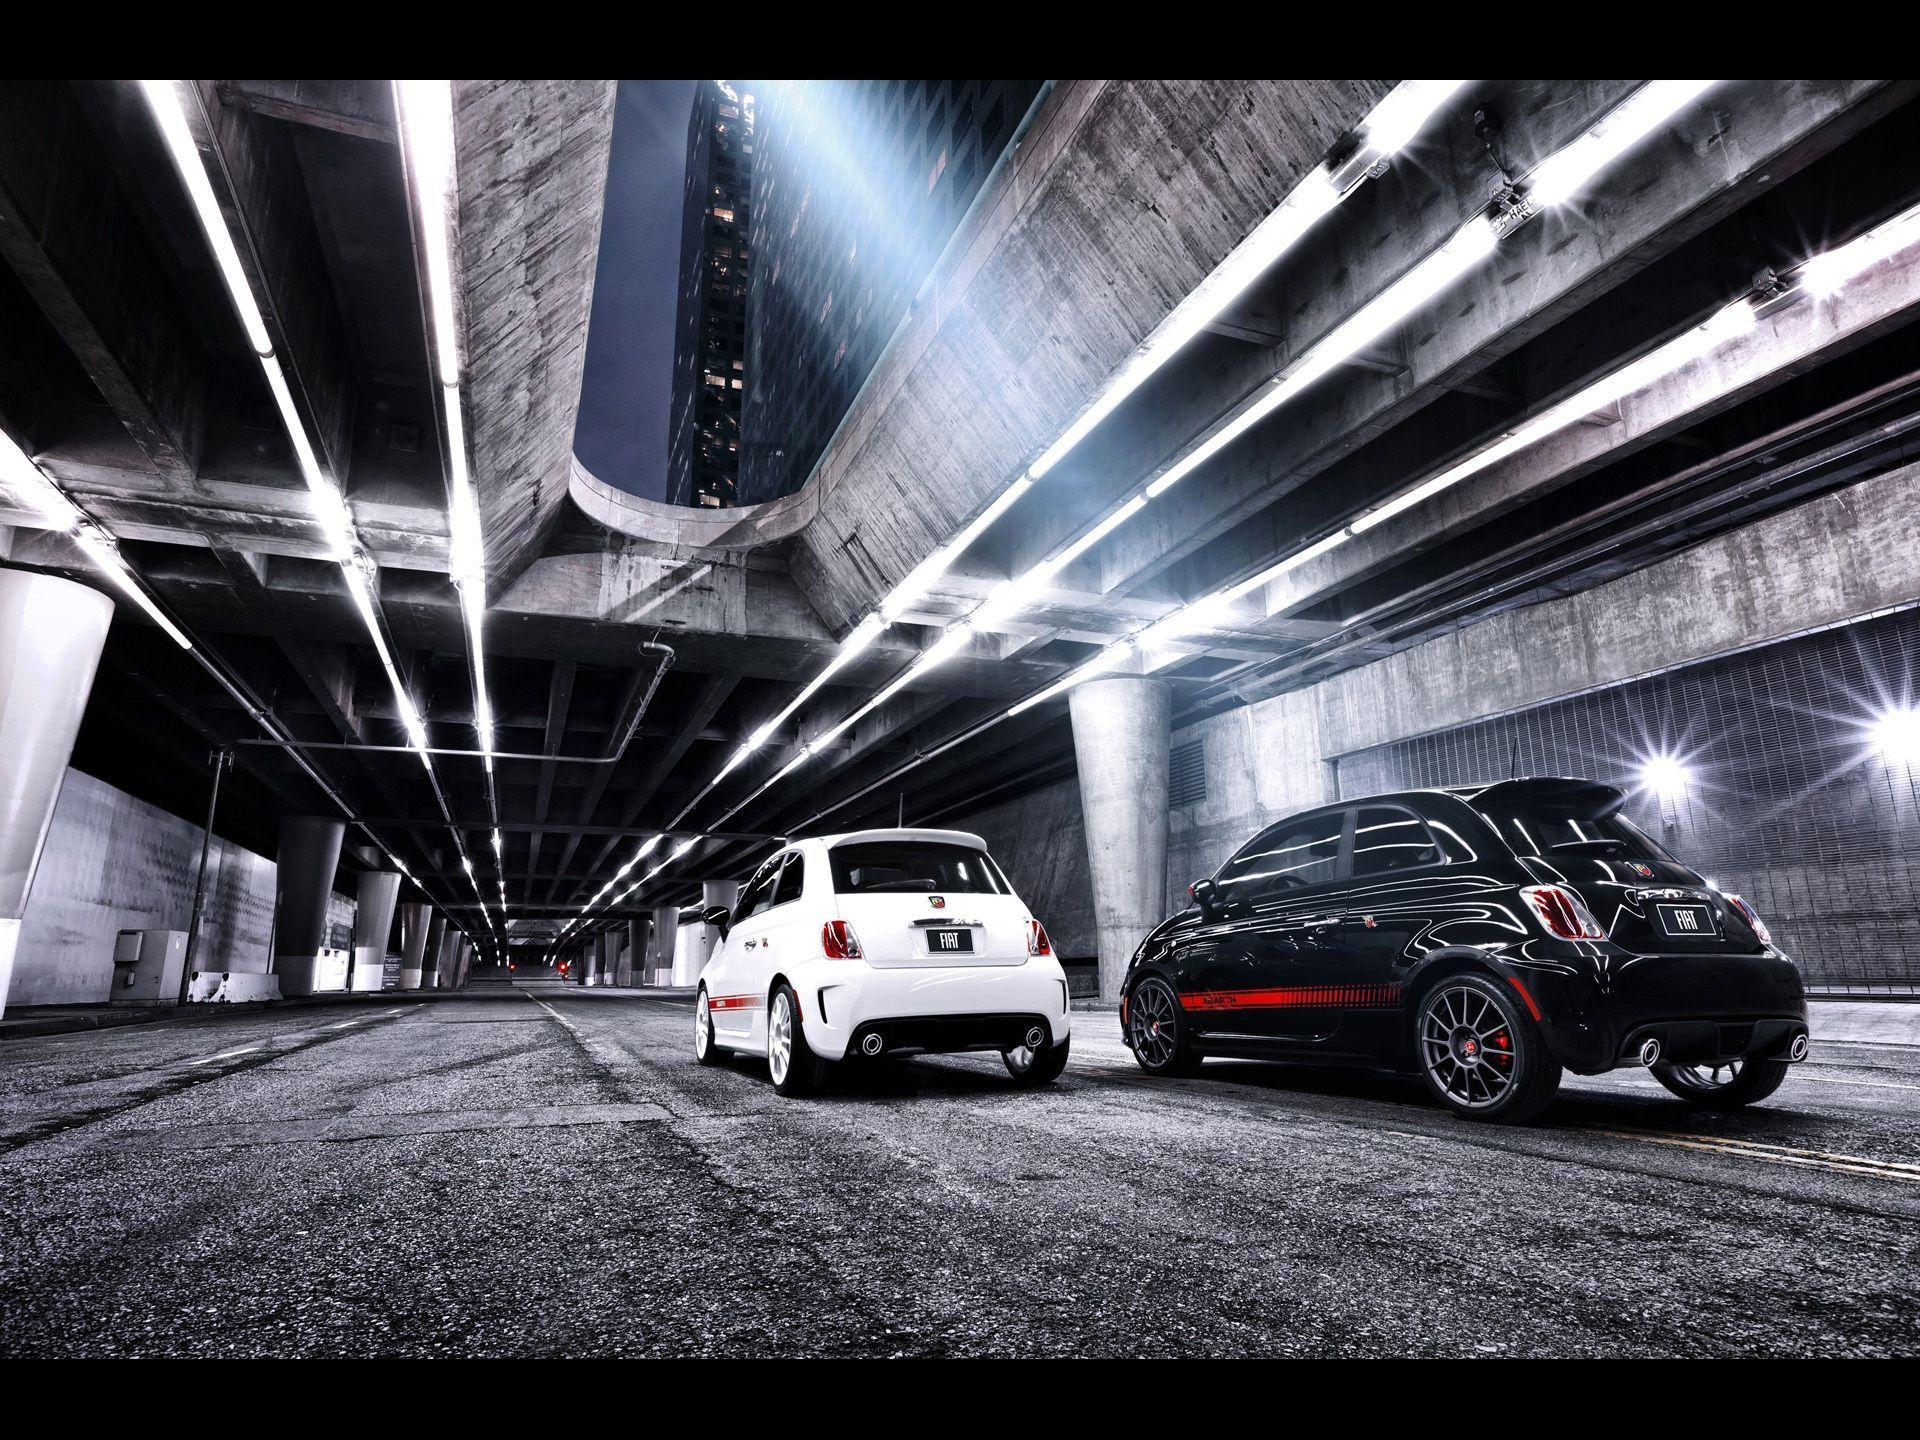 Fiat 500 Abarth Duo Rear wallpapers | Fiat 500 Abarth Duo Rear stock ...